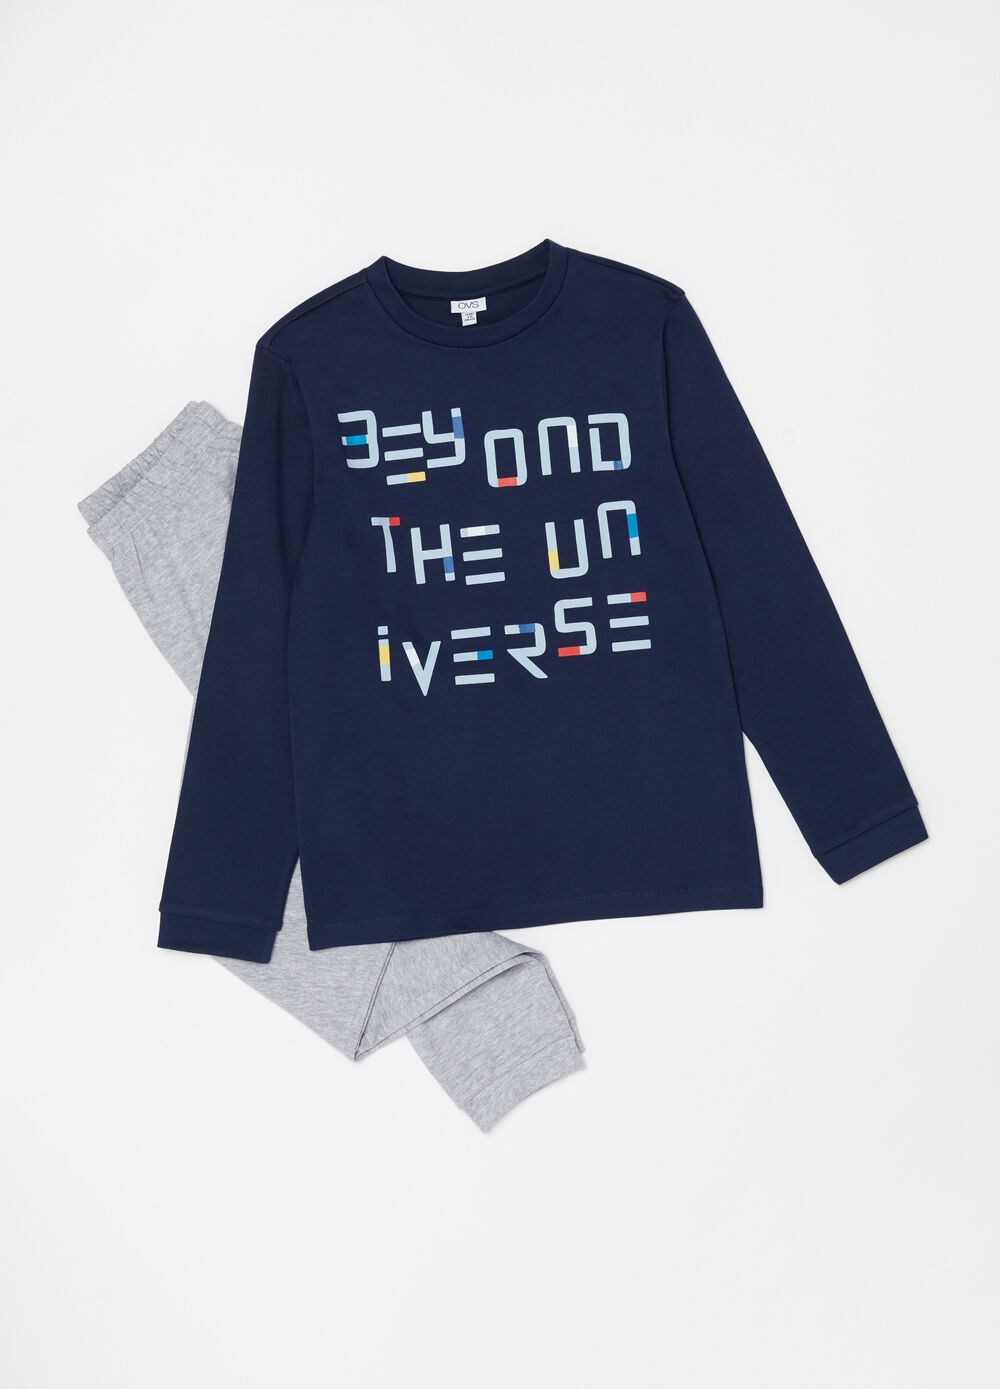 Pyjamas with printed lettering